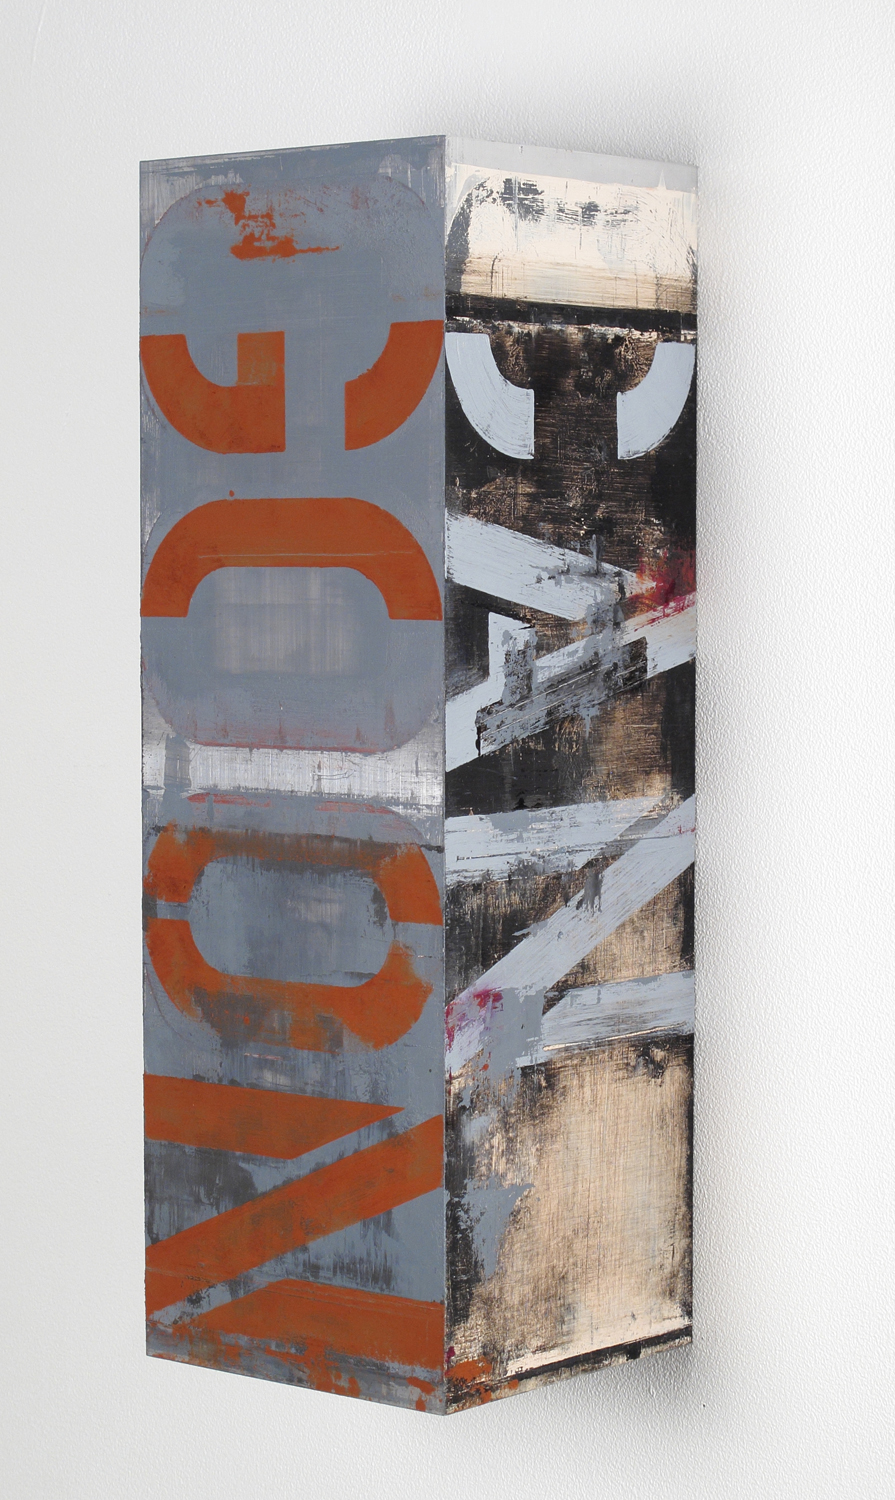 Brian Dupont, Godot, 2011. Oil on aluminum. 18 x 6 x 6 inches (courtesy of the a